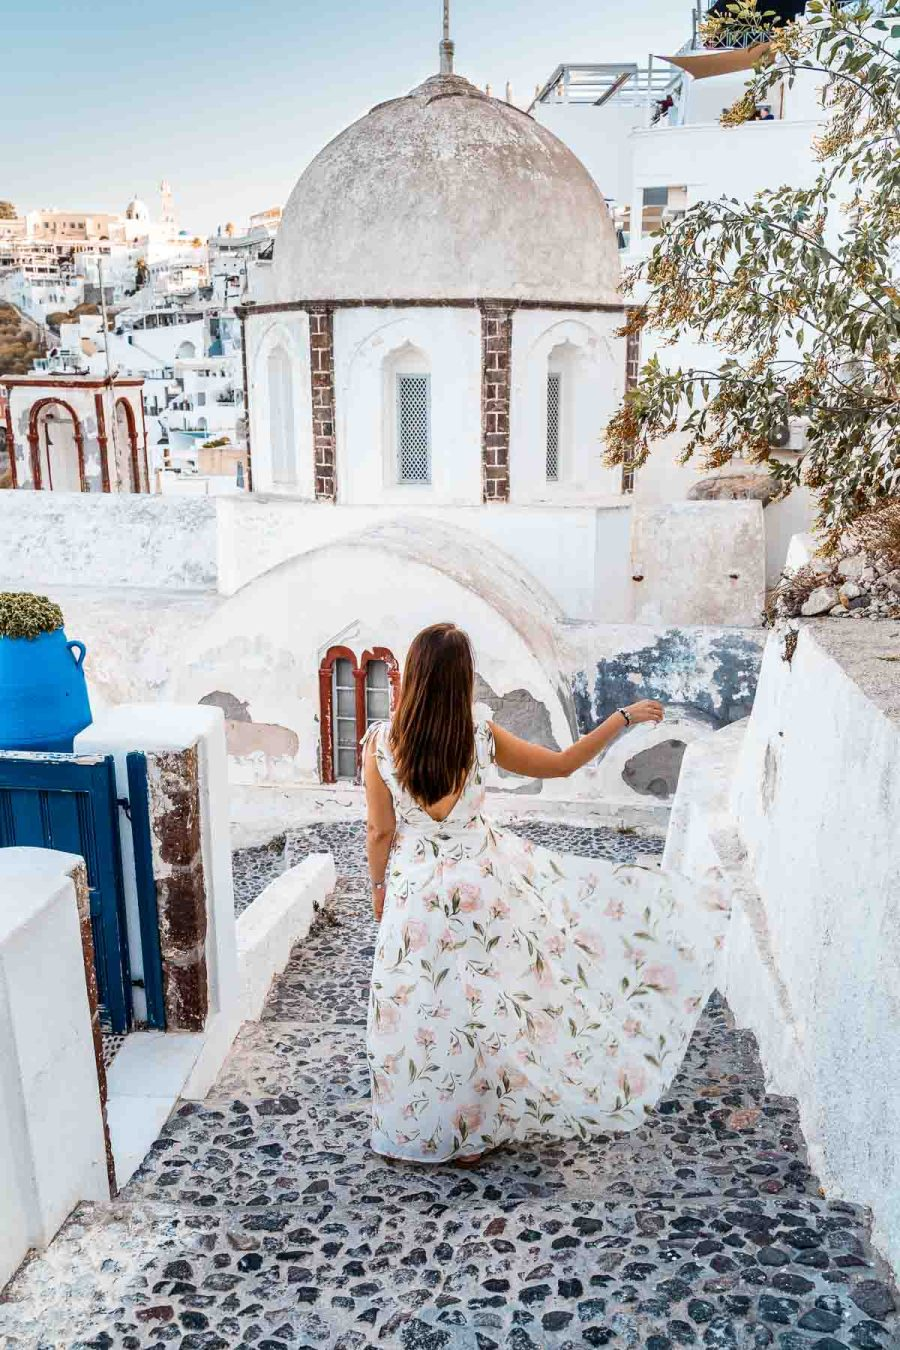 Girl in a floral dress standing in front of the church of St. John in Fira, Santorini